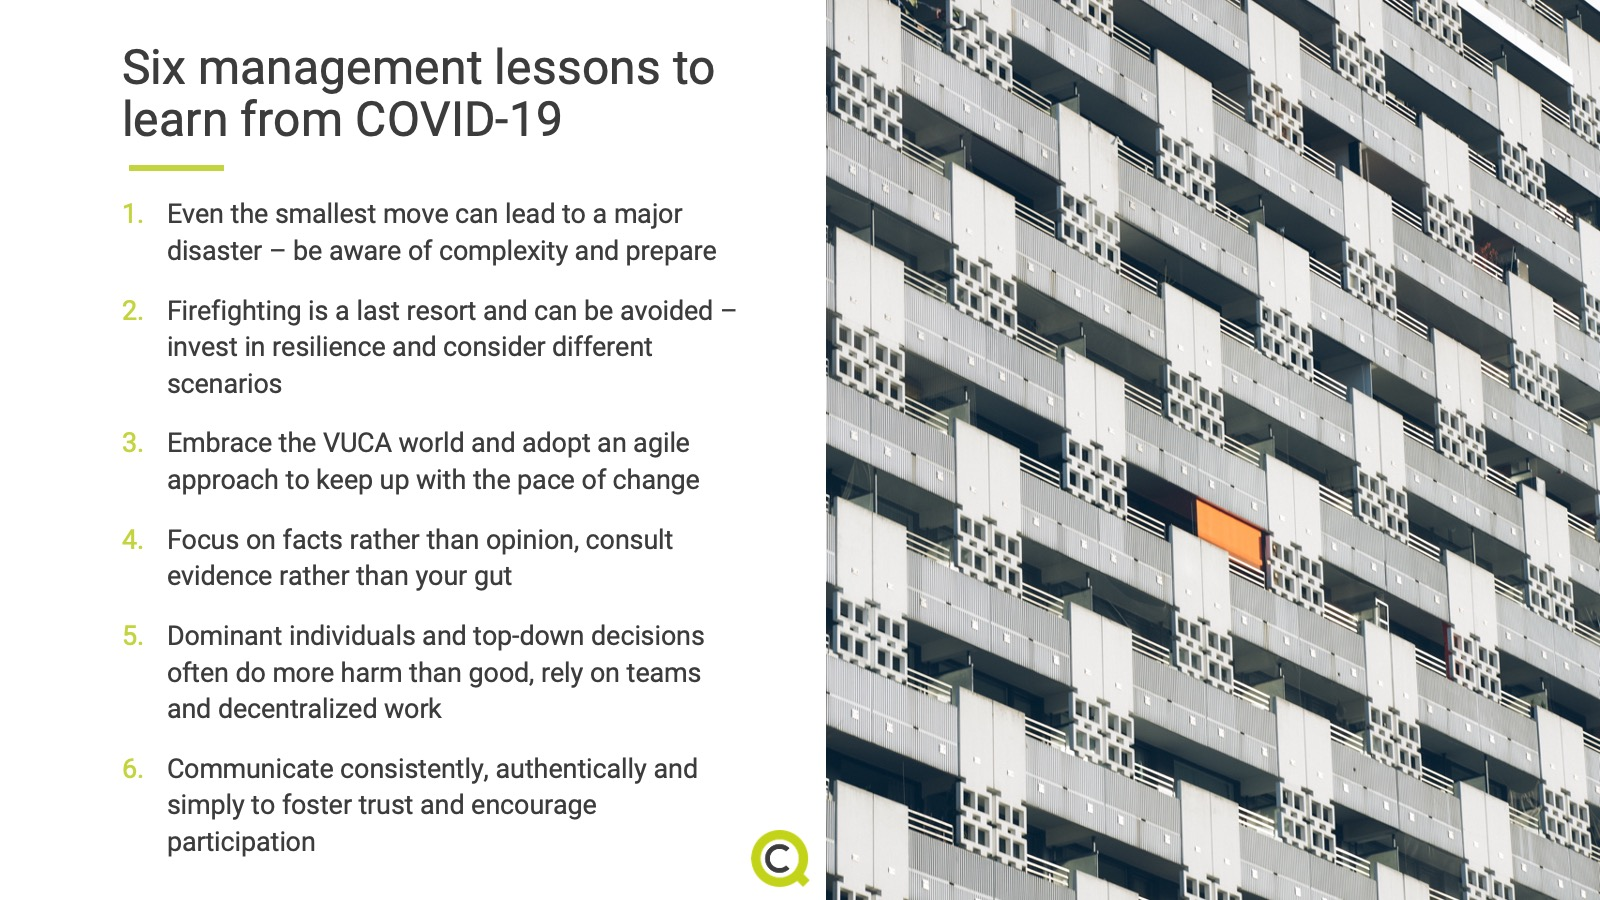 Six management lessons to learn from COVID-19